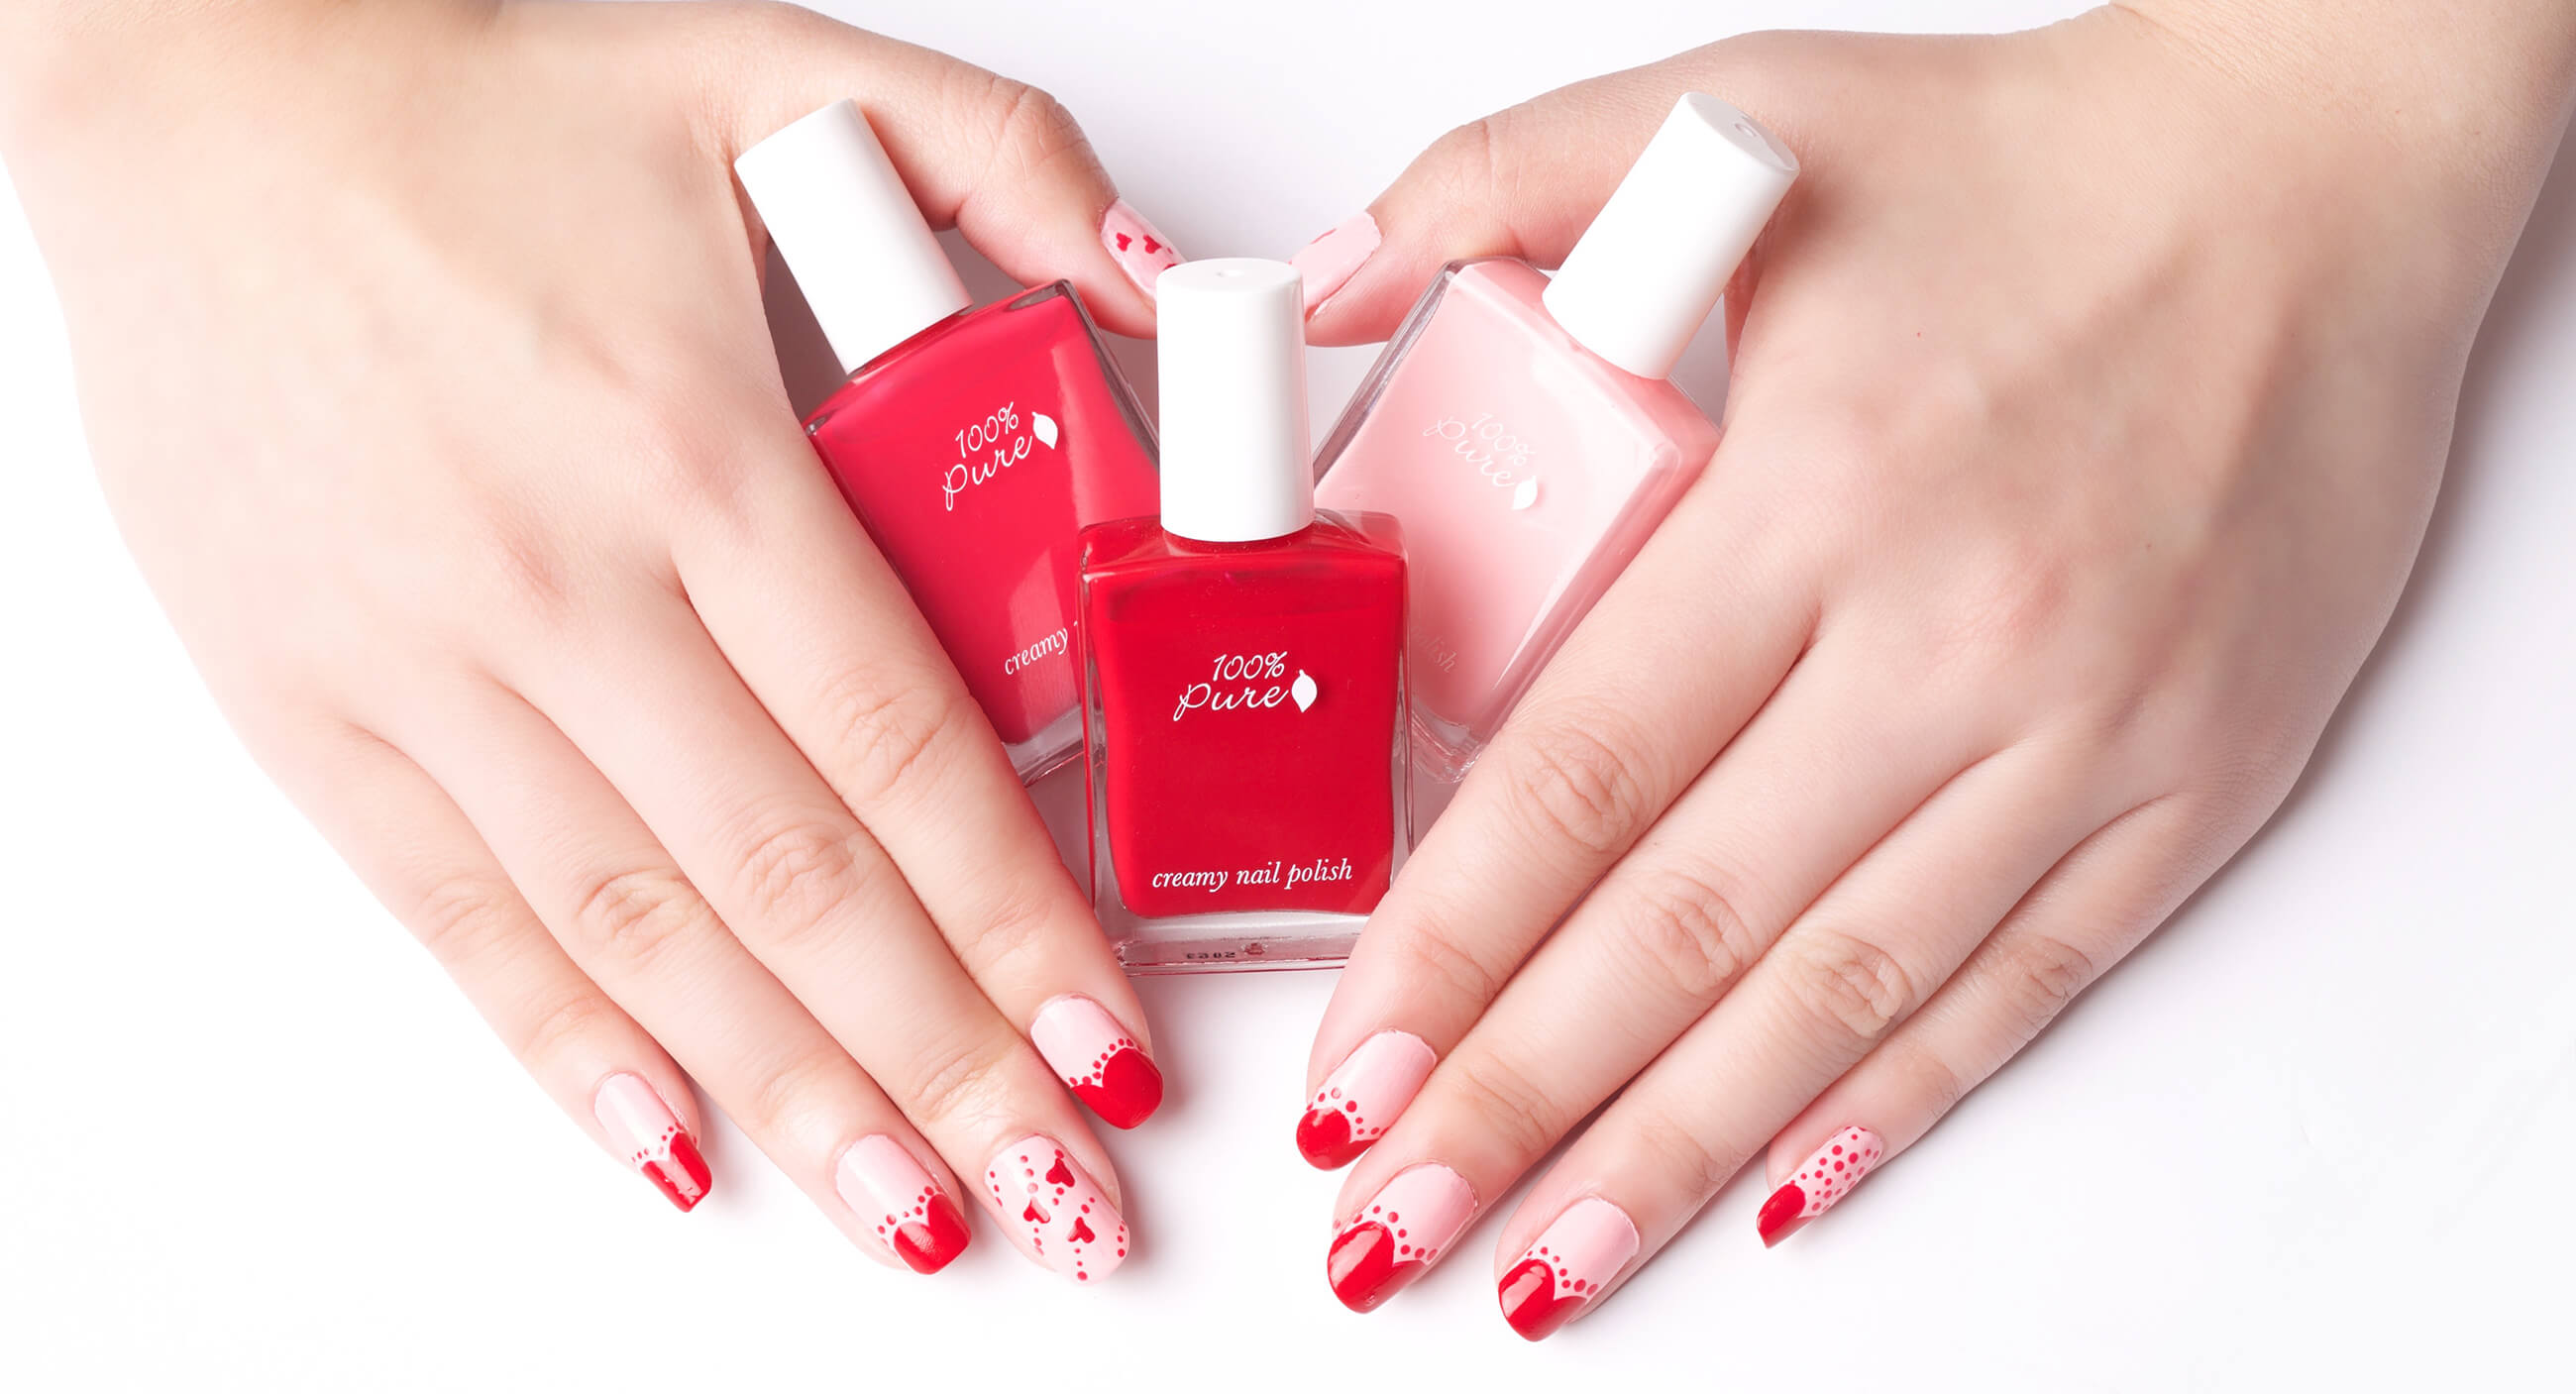 100% PURE creamy nail polish products